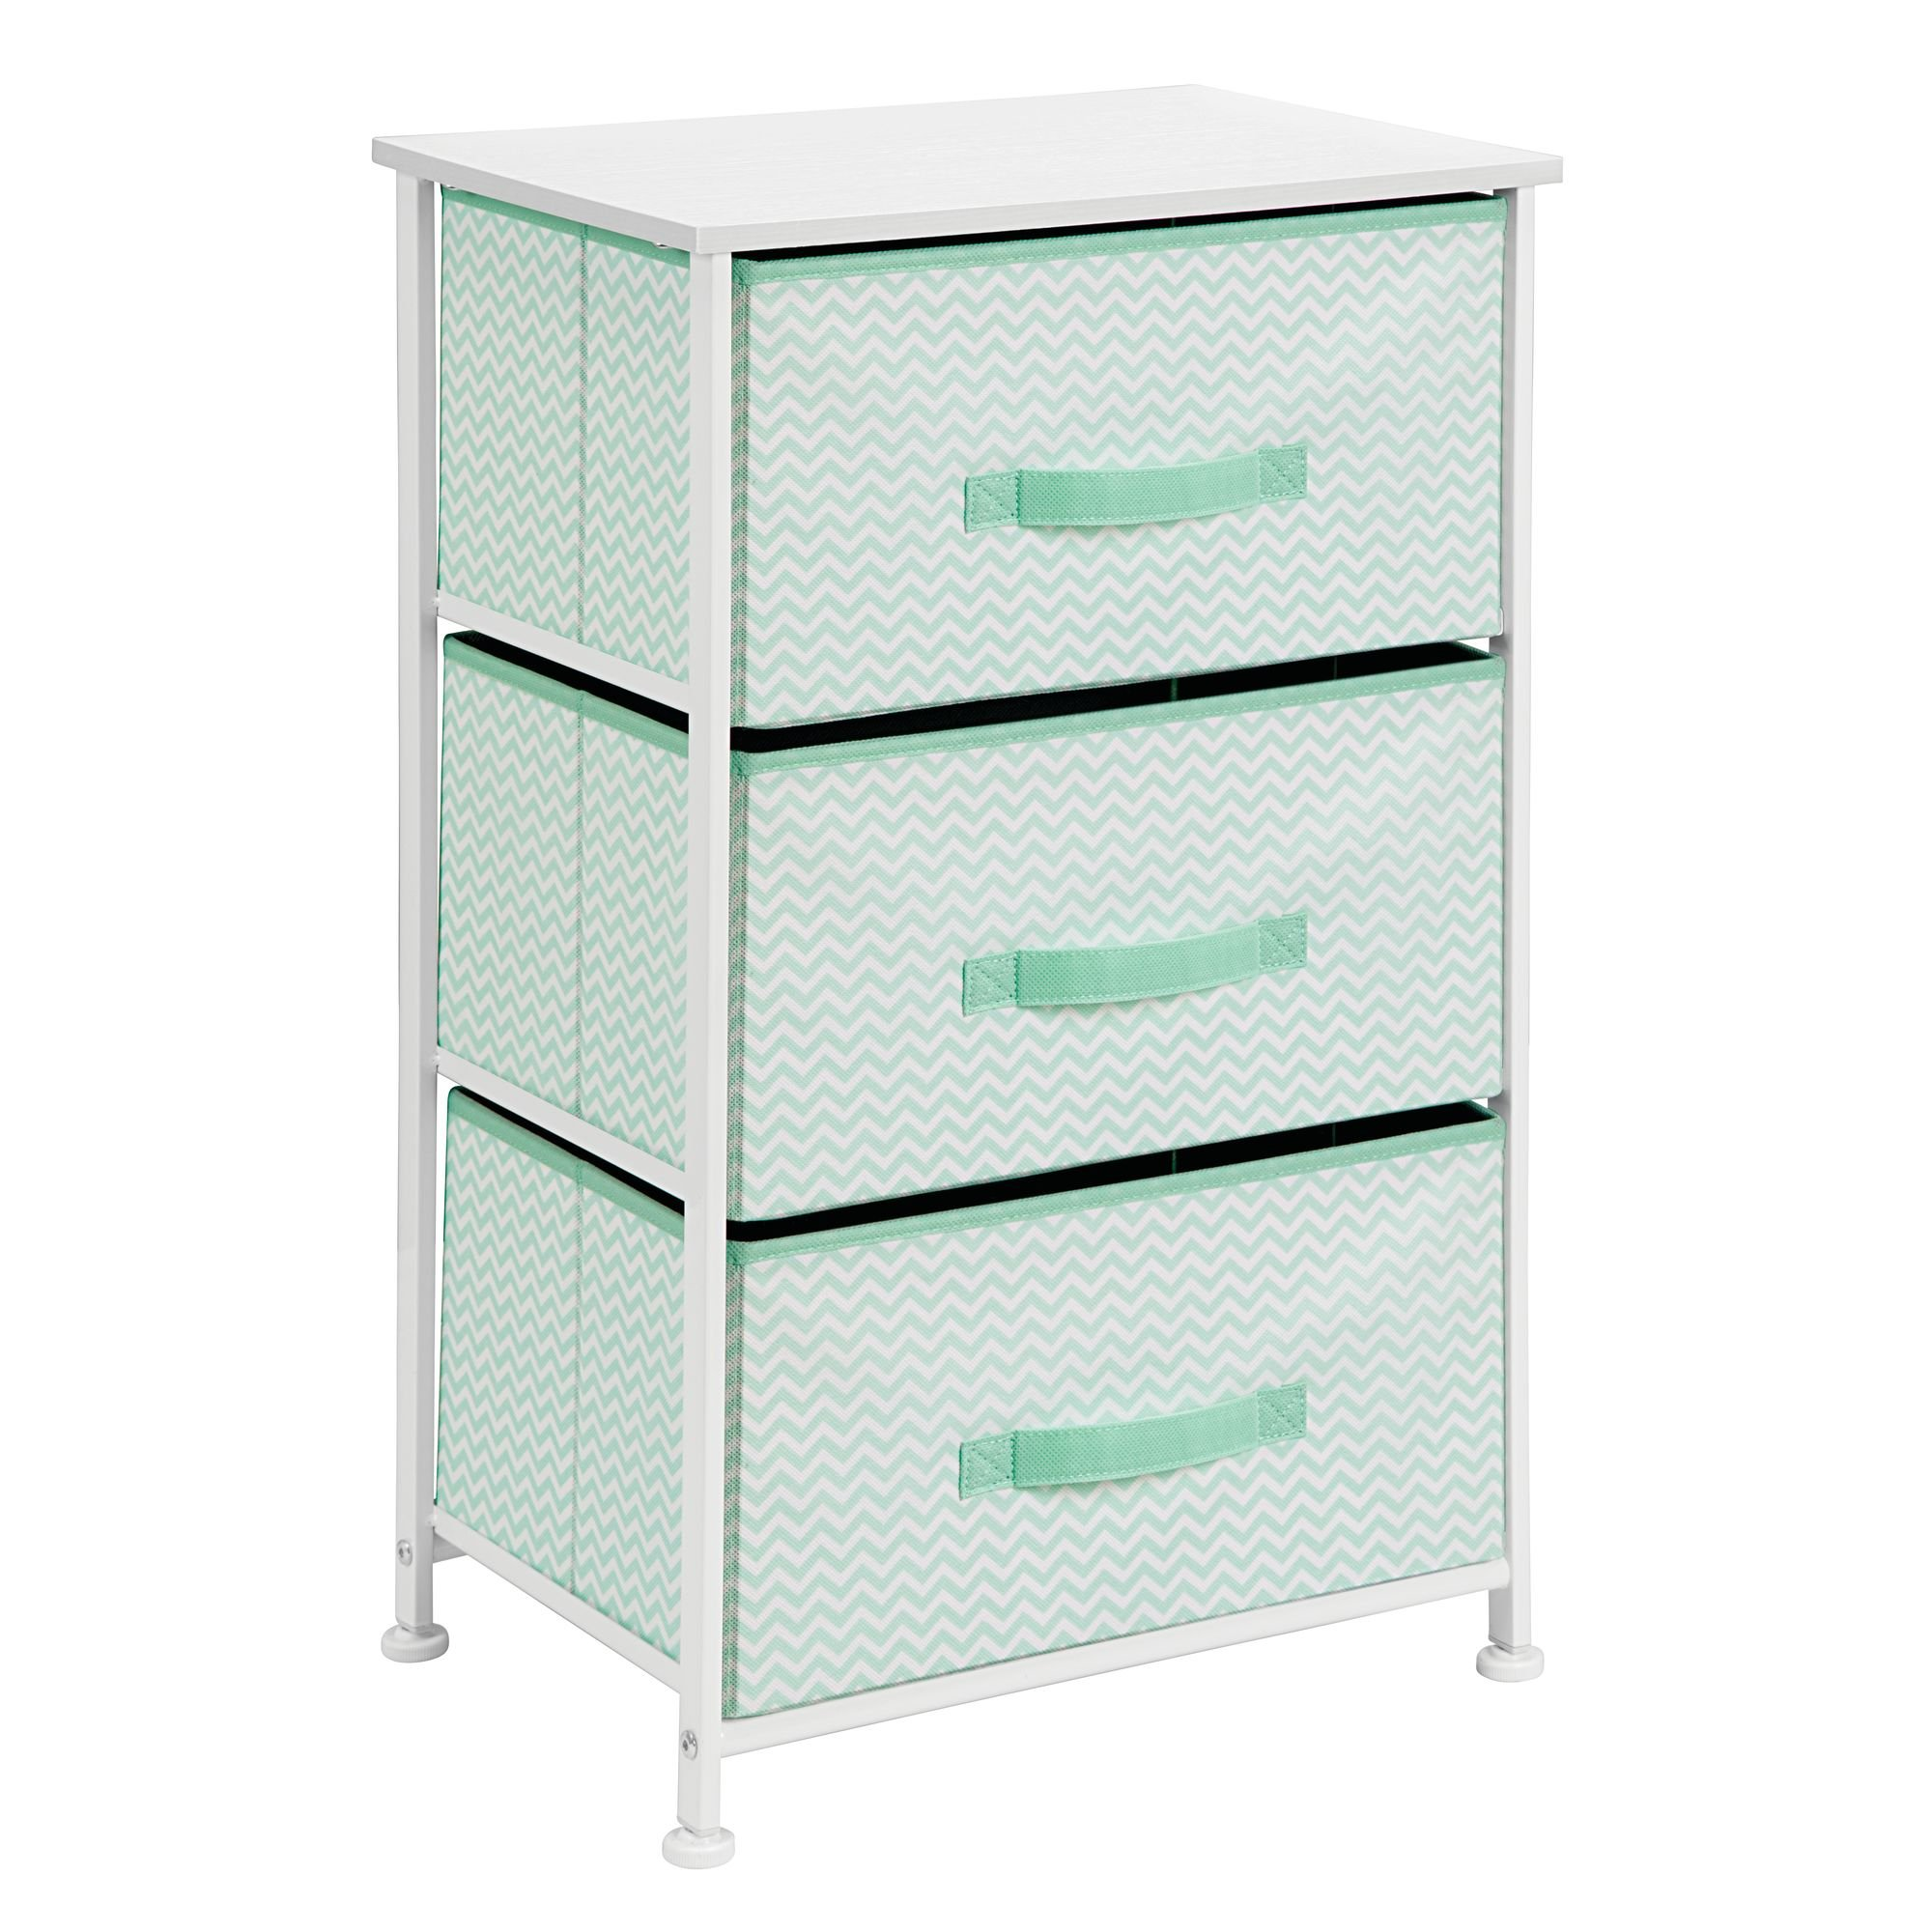 mDesign Vertical Dresser Storage Tower - Sturdy Steel Frame, Wood Top, Easy Pull Fabric Bins - Organizer Unit for Bedroom, Hallway, Entryway, Closets - Chevron Print - 3 Drawers, Mint/White by mDesign (Image #6)